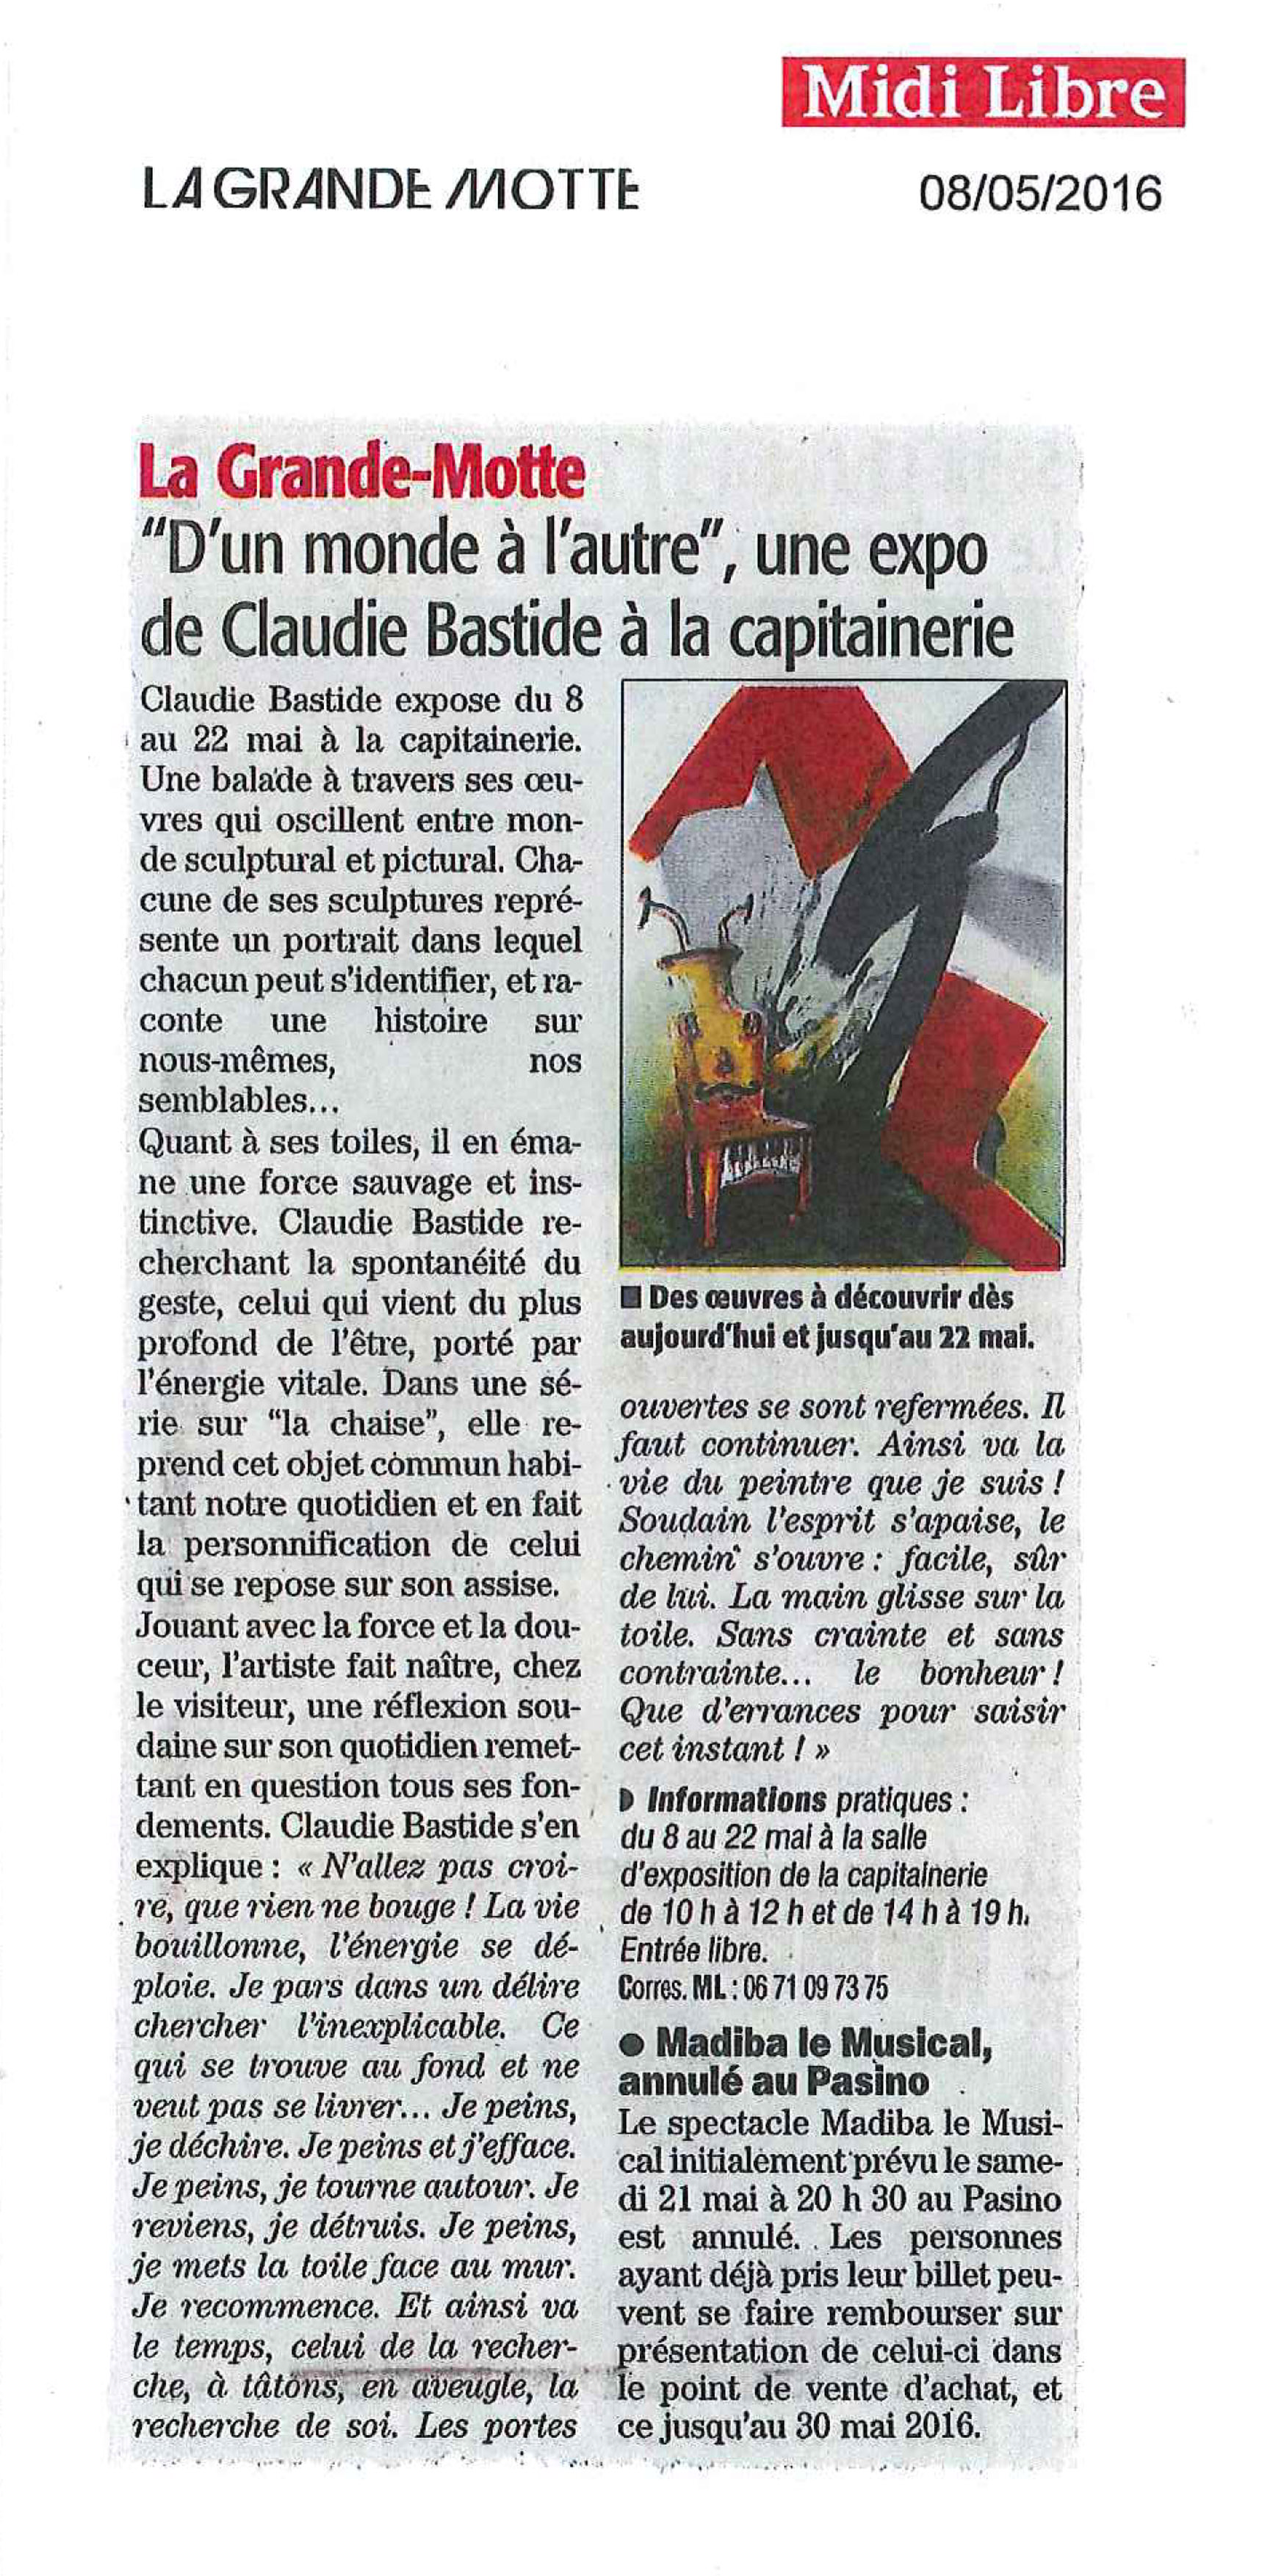 Midi Libre article 08 05 2016